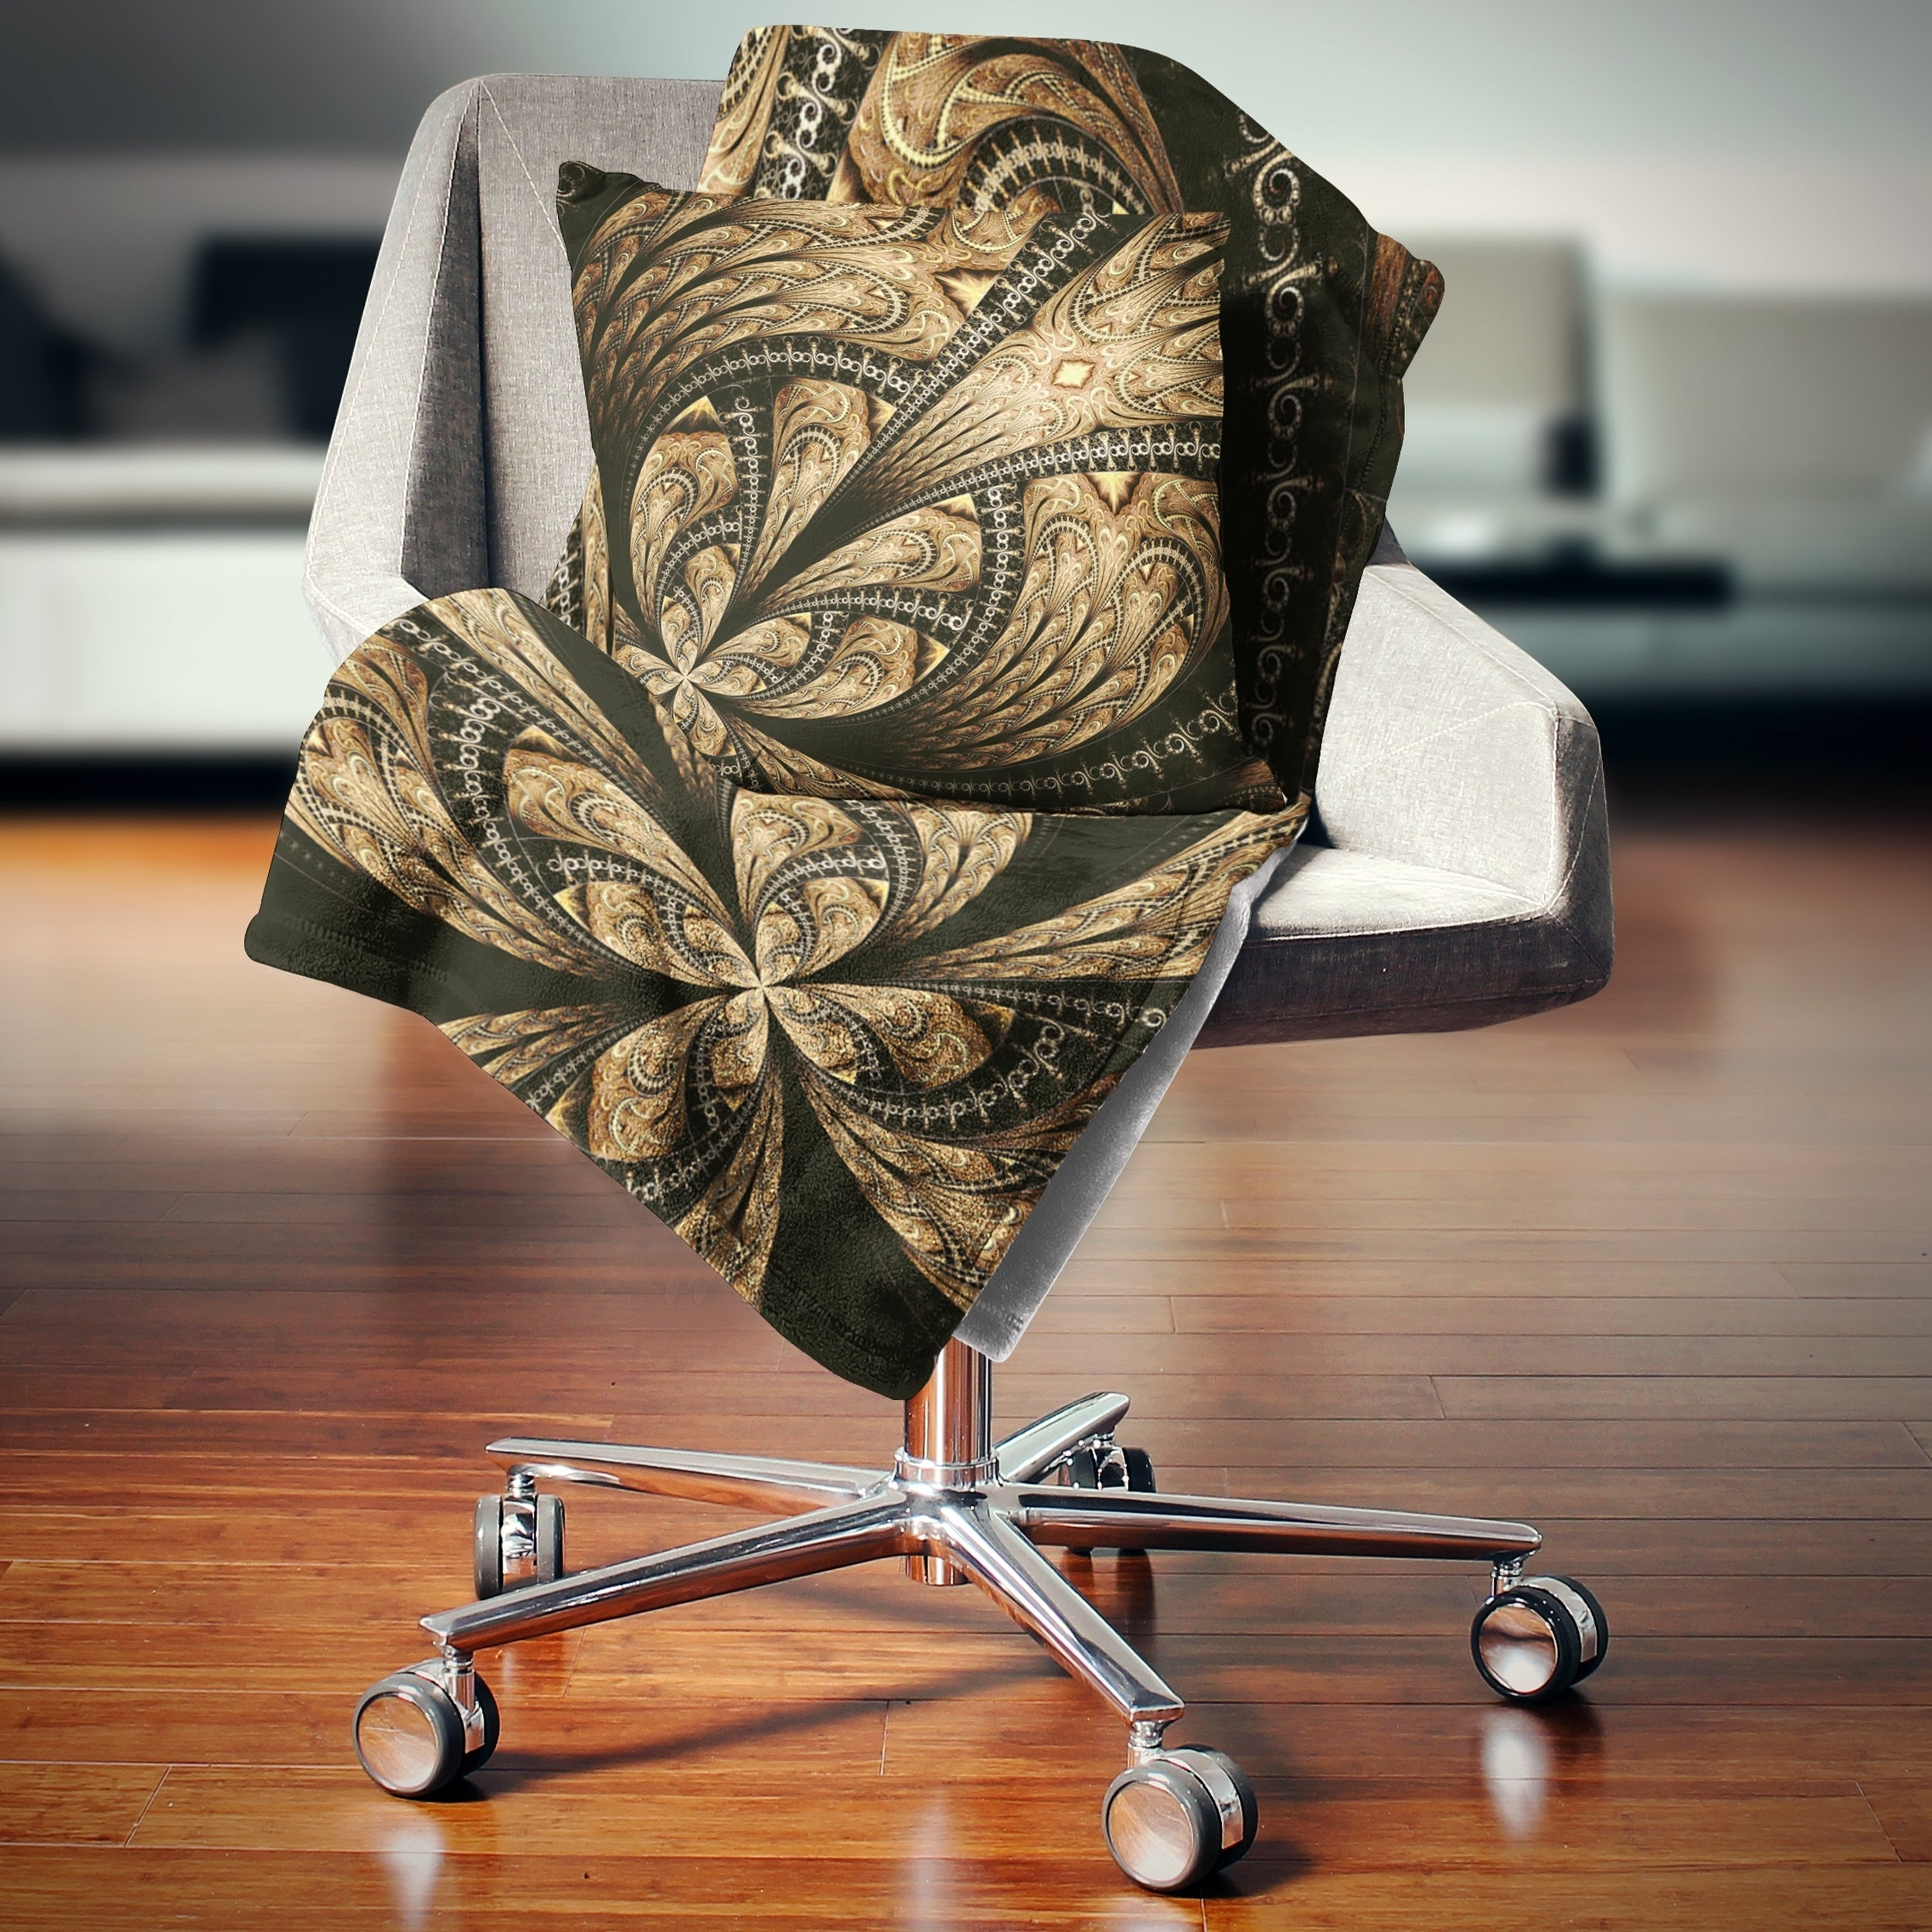 Designart Symmetrical Large Brown Fractal Flower Floral Throw Blanket Overstock 20915793 59 In X 71 In